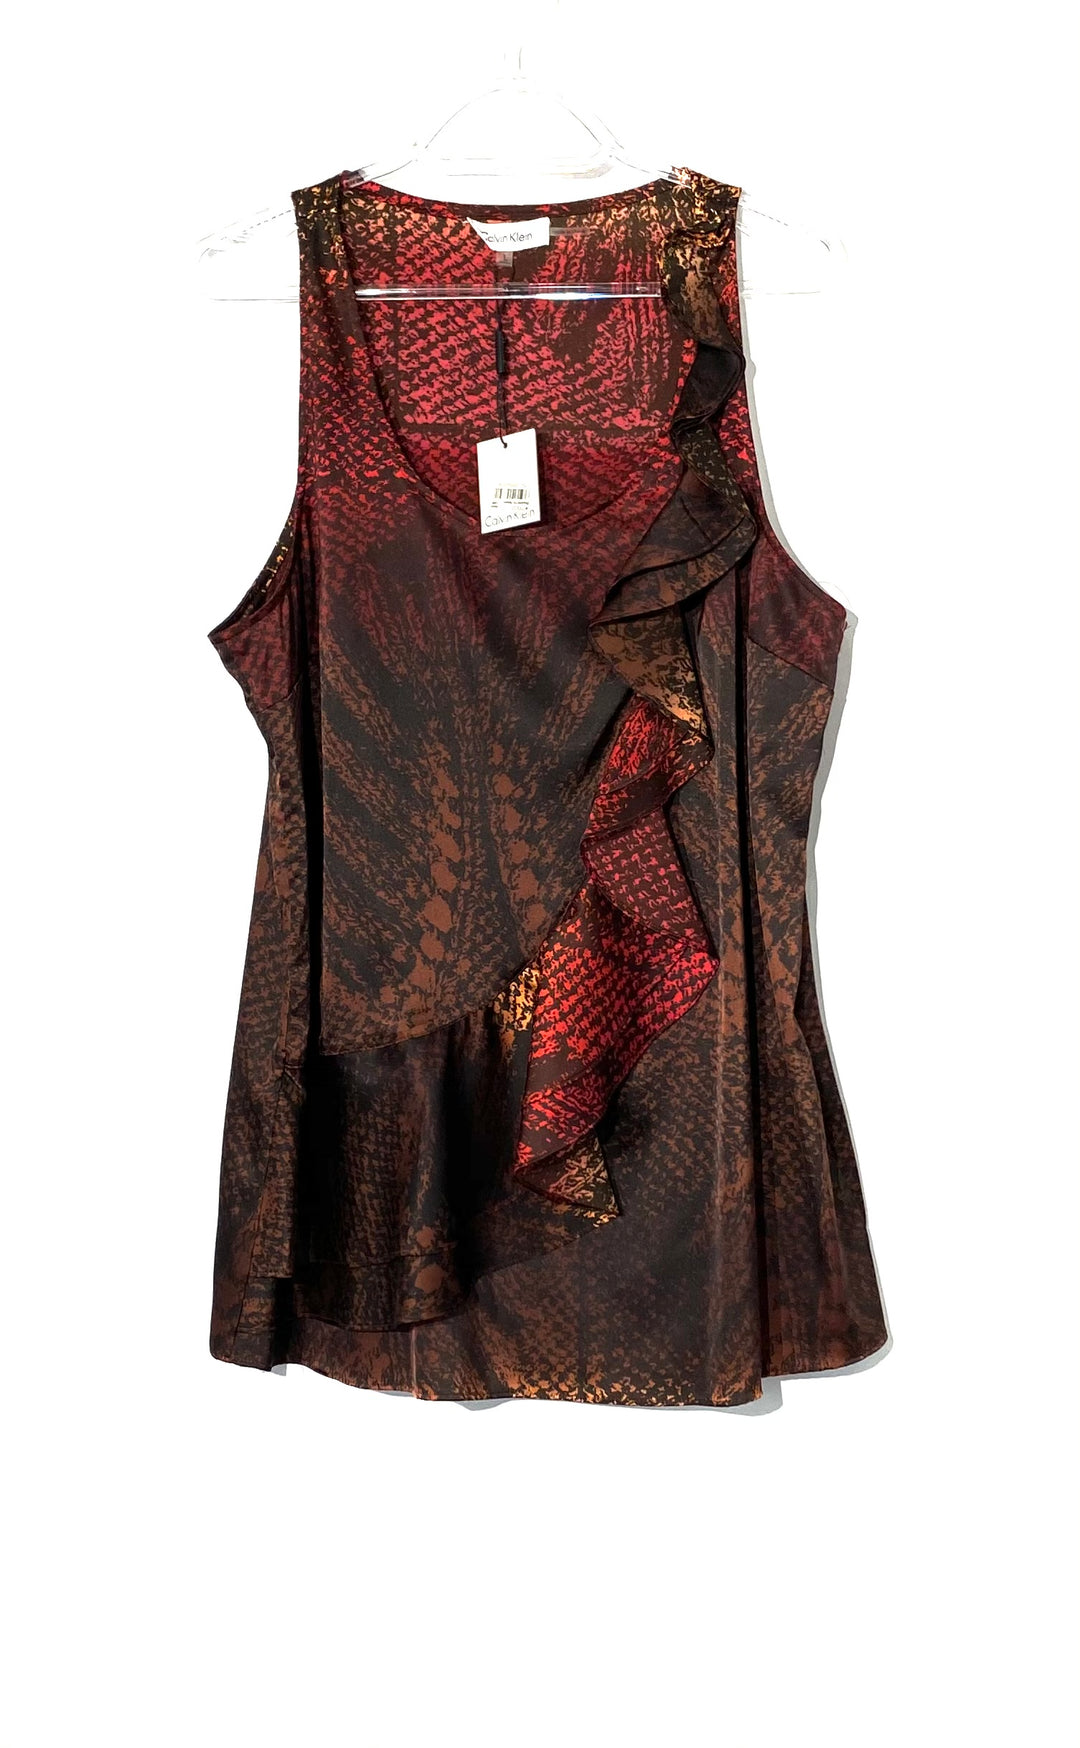 Primary Photo - BRAND: CALVIN KLEIN <BR>STYLE: TOP SLEEVELESS <BR>COLOR: MULTI <BR>SIZE: L <BR>SKU: 262-26275-71958